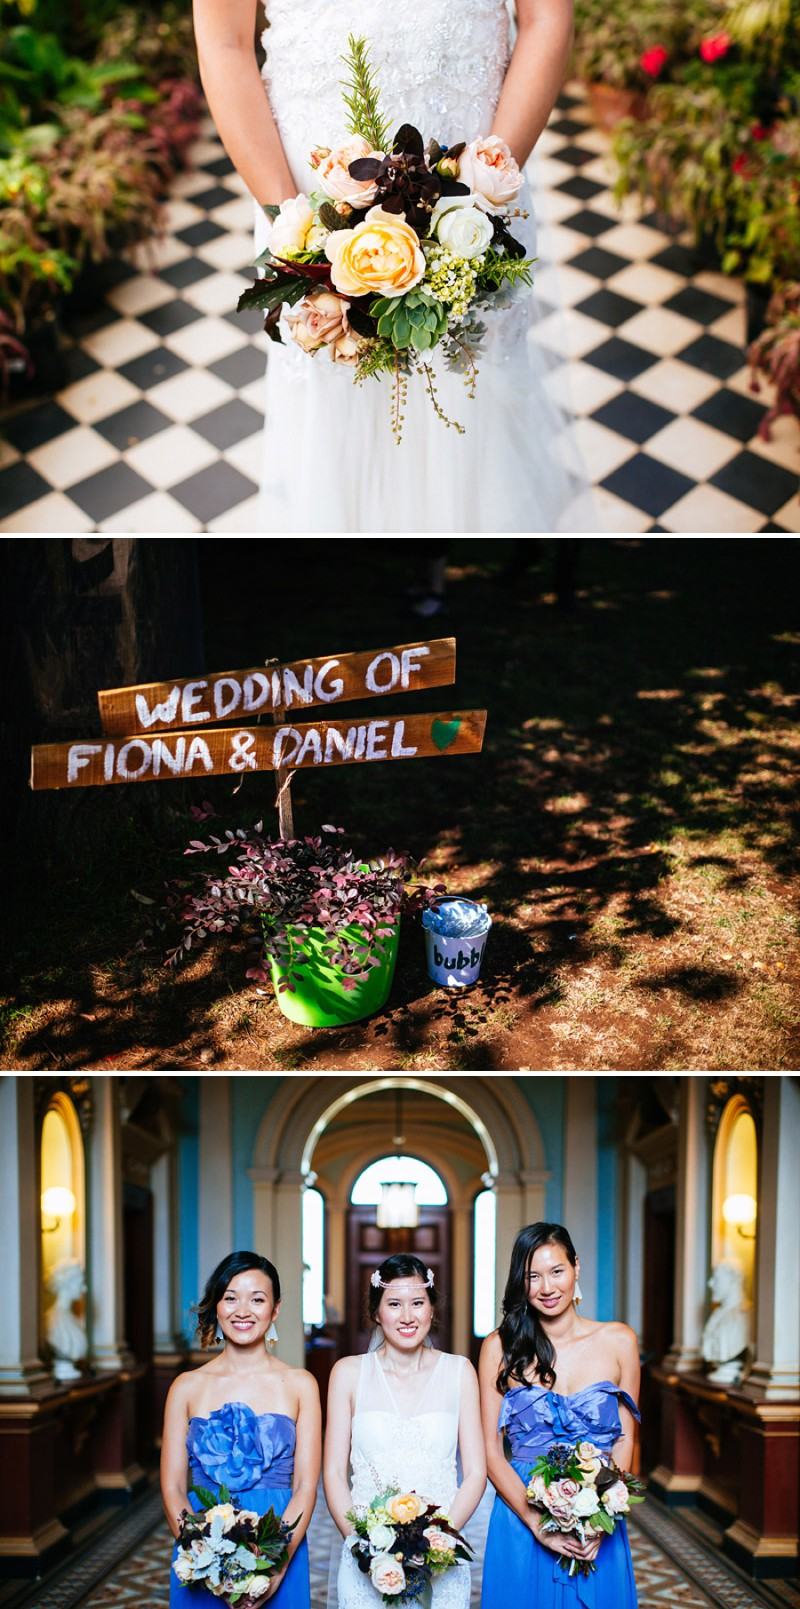 Ultra Hip And Modern Outdoor Destination Wedding In Australia With An Anna Campbell Bridal Gown And An Autumnal Bouquet With Electric Blue Bridesmaid Dresses Photographed By Lakshal Perera._0001